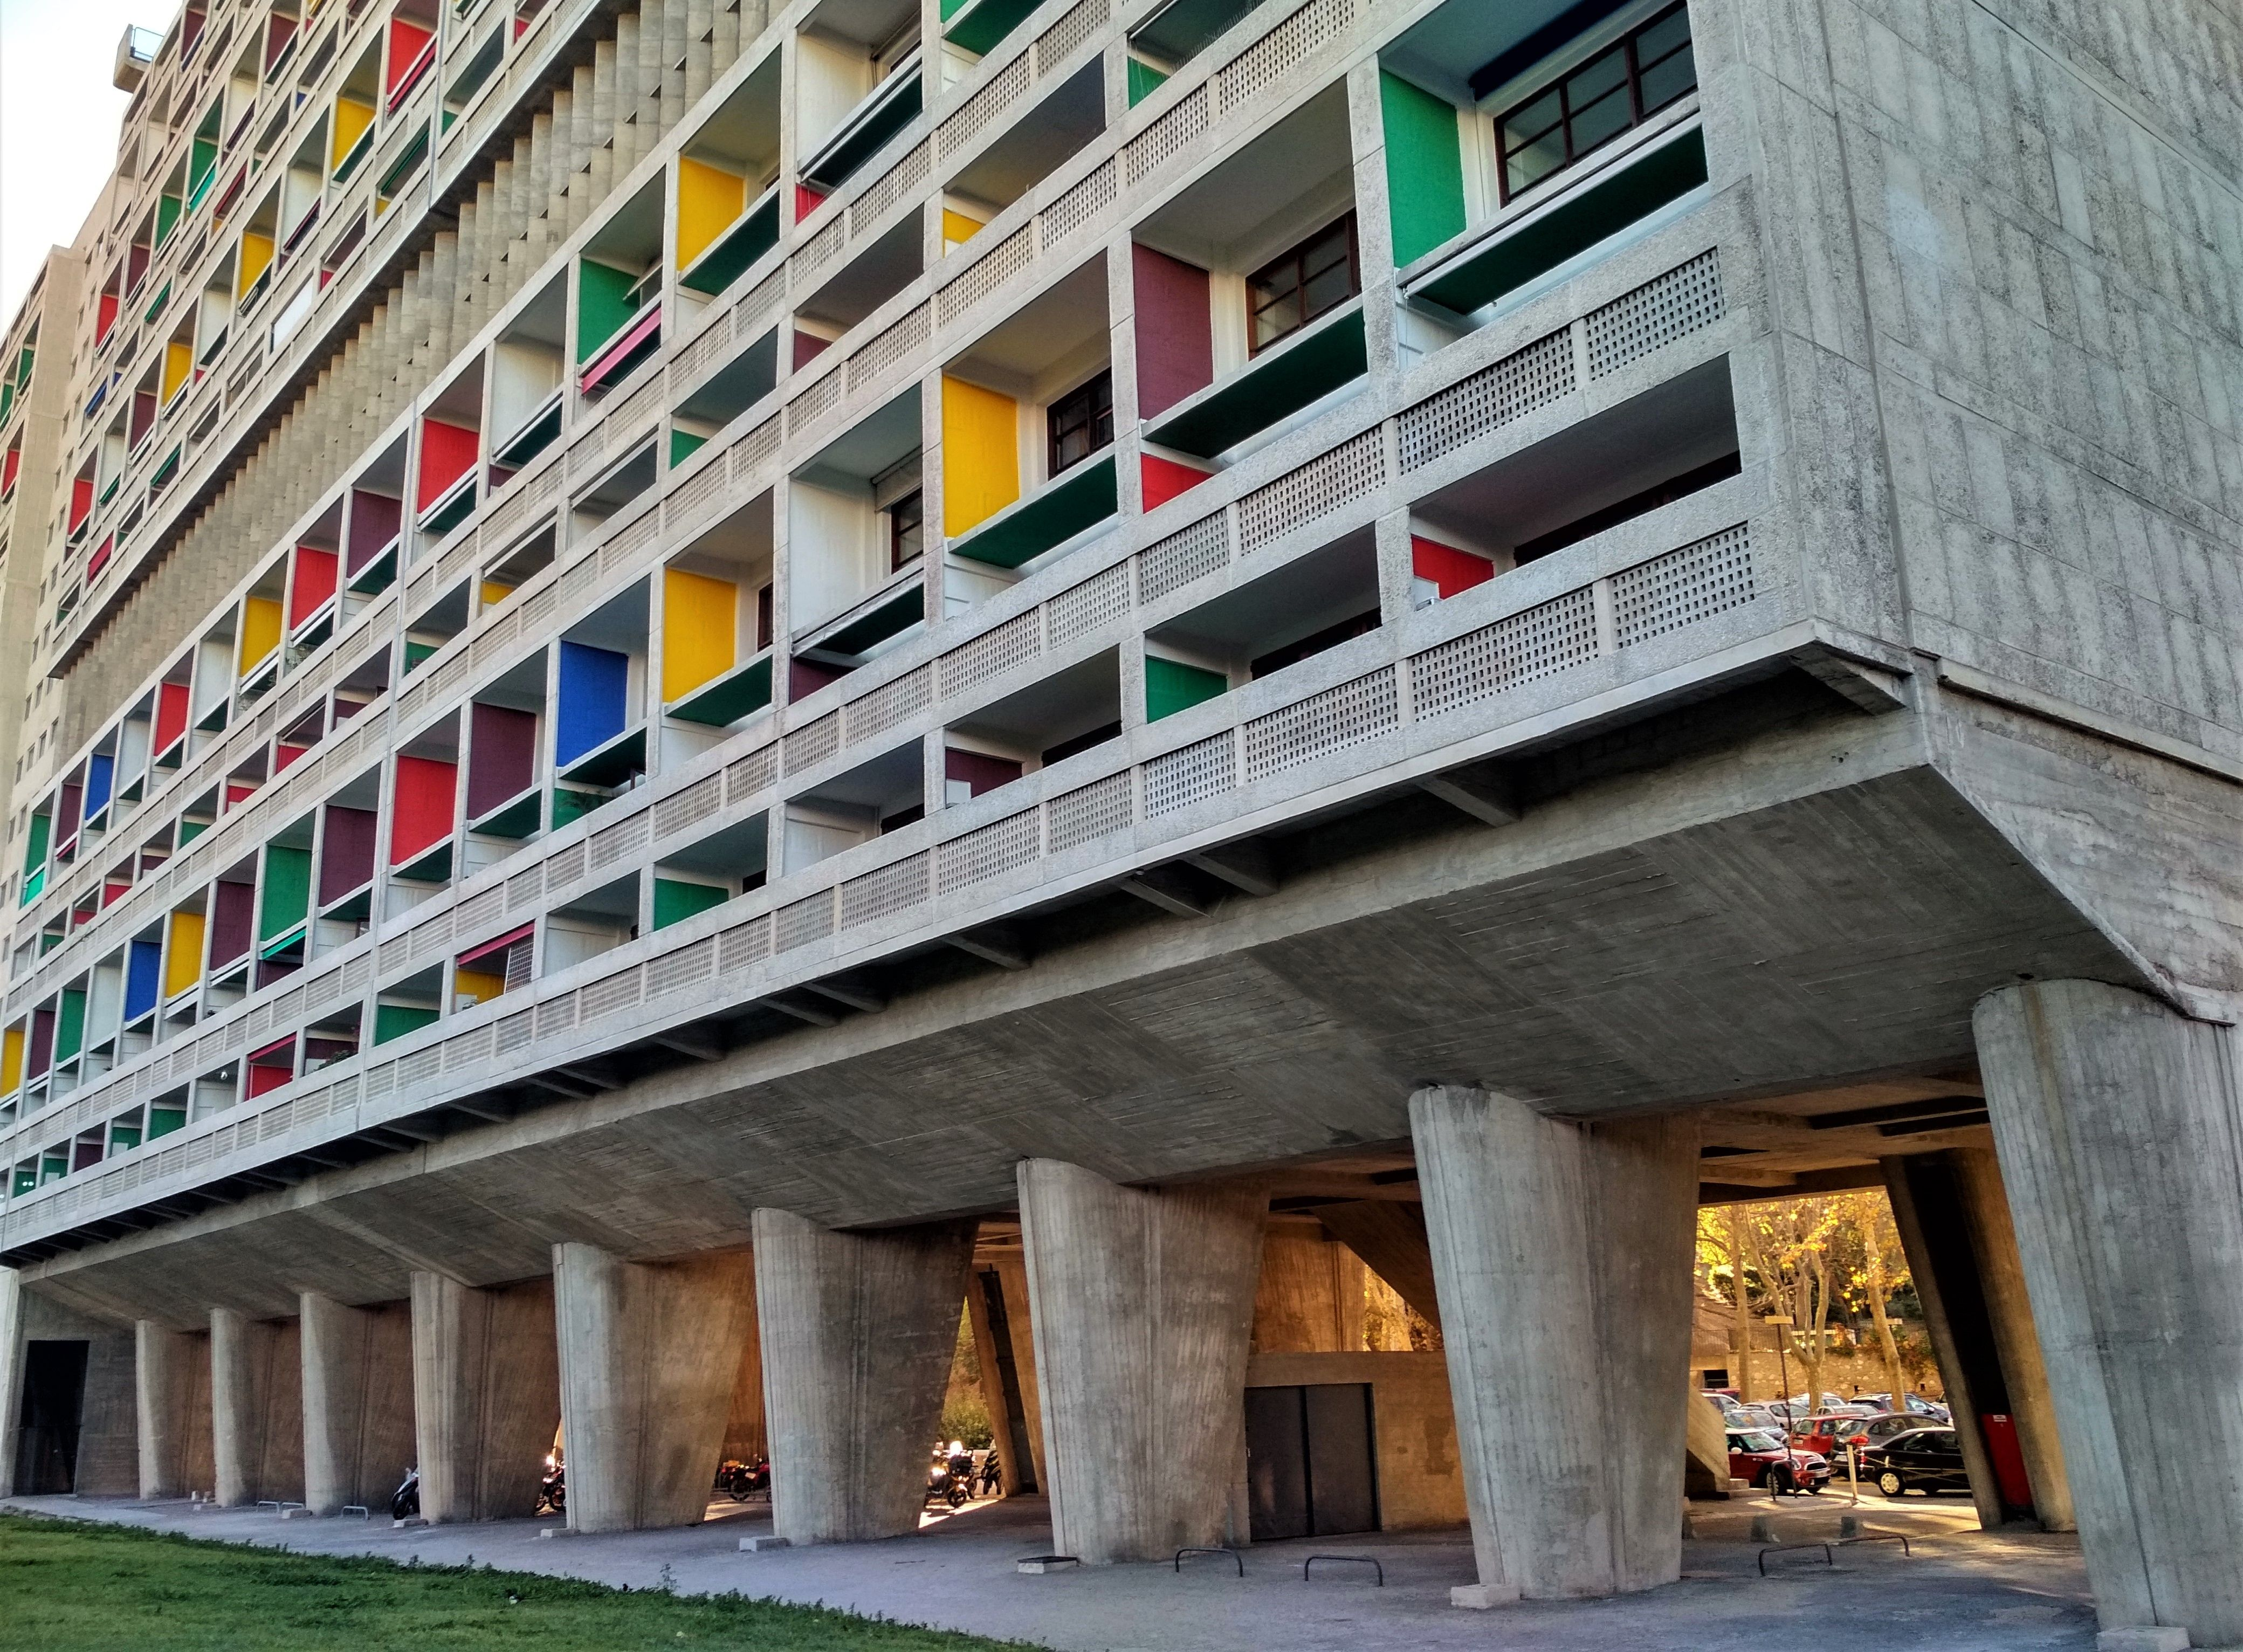 If You Are Interested In The History Of Architecture Absolutely Must Visit Cité Rause Le Corbusier A Remarkable Building Which Is An Excellent